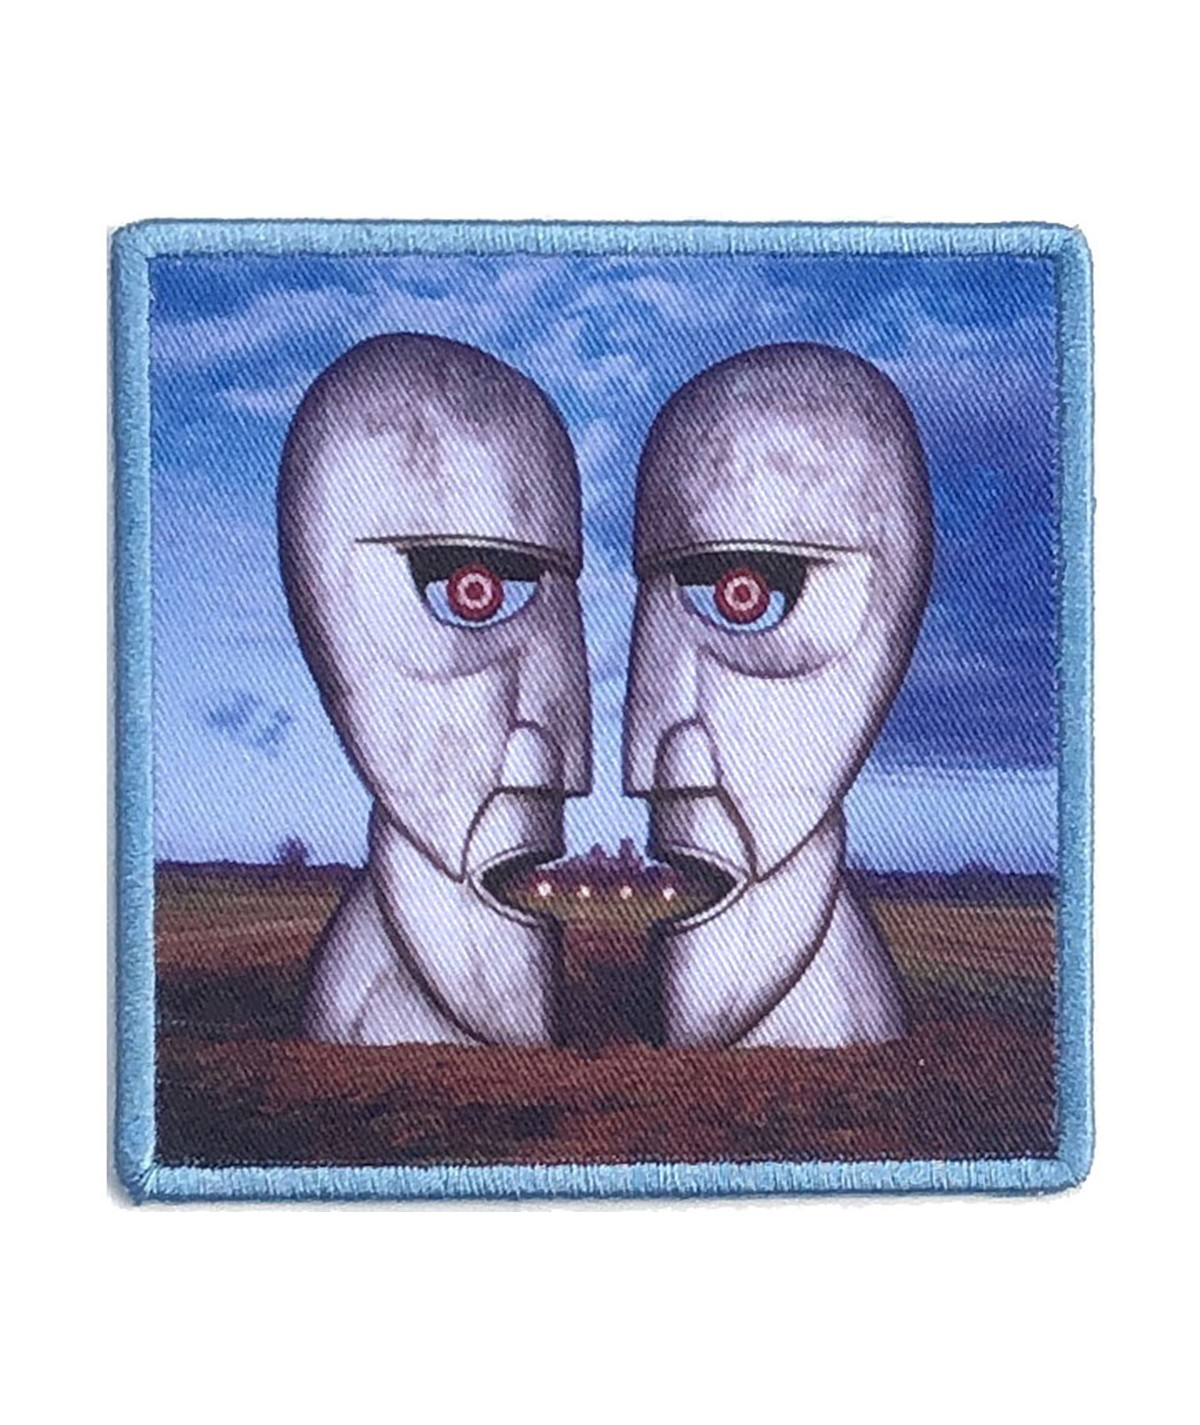 Patch Pink Floyd: The Division Bell